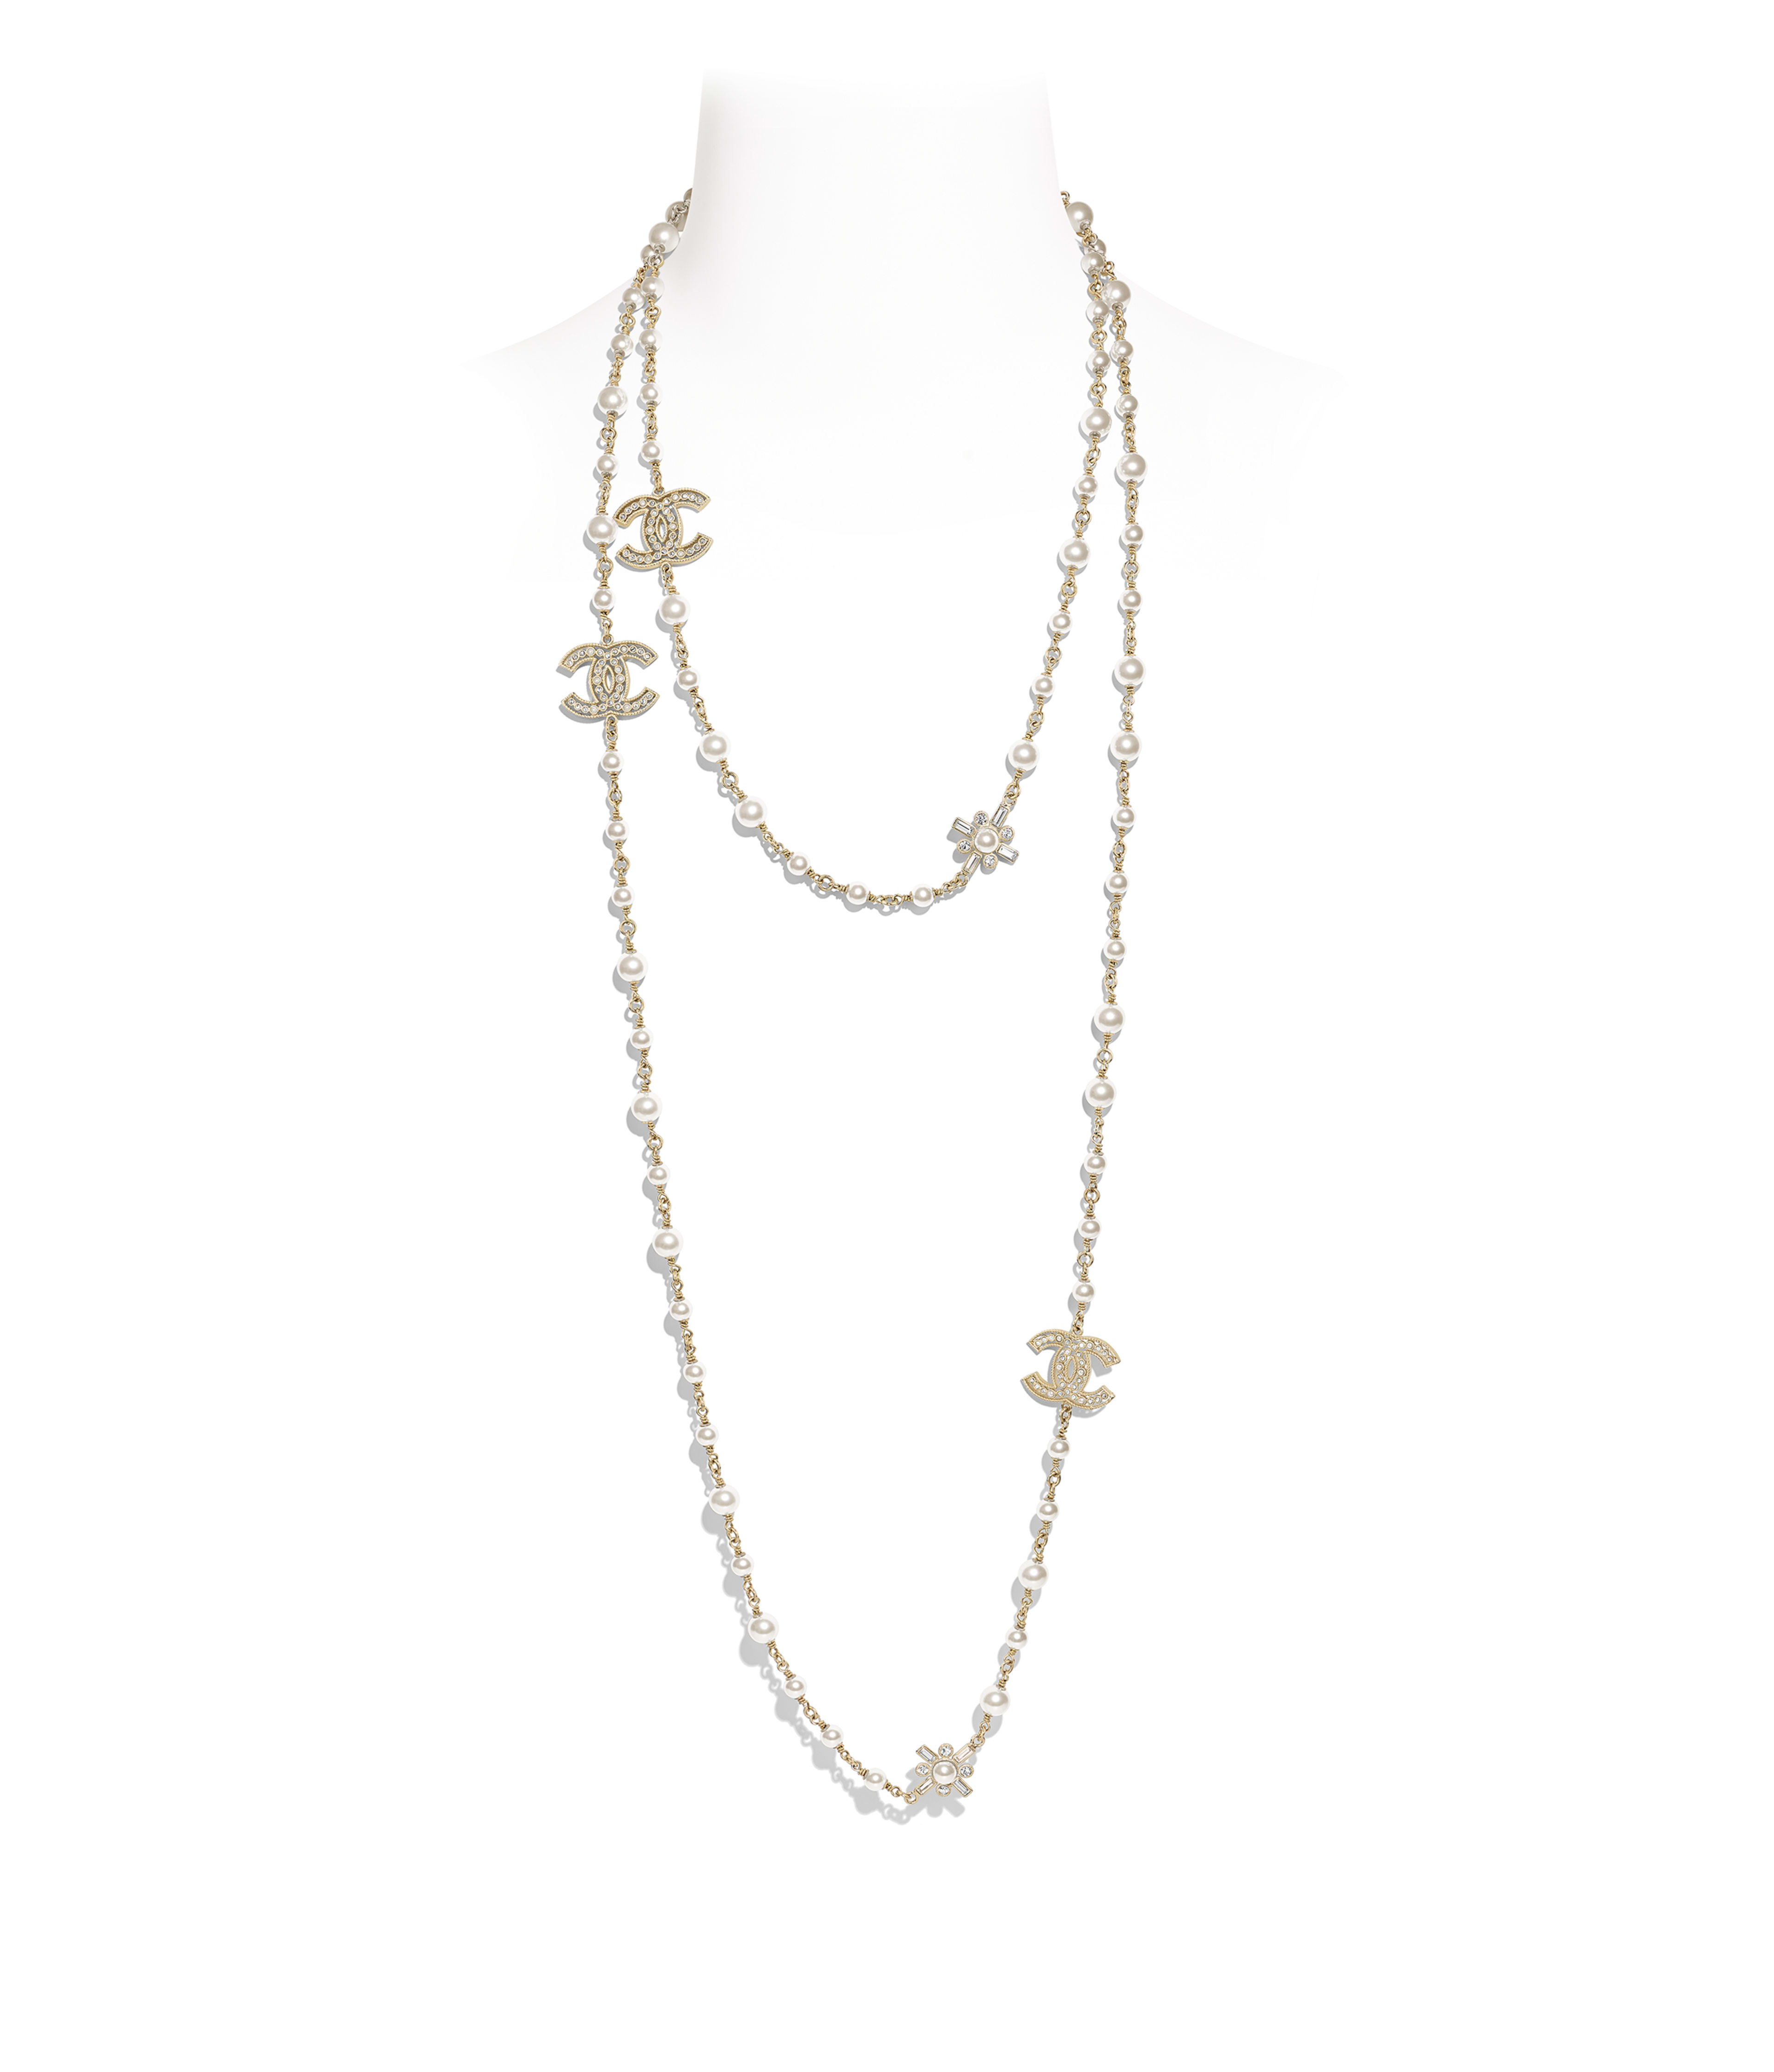 3ae25ac4b5960 Necklaces - Costume jewelry | CHANEL